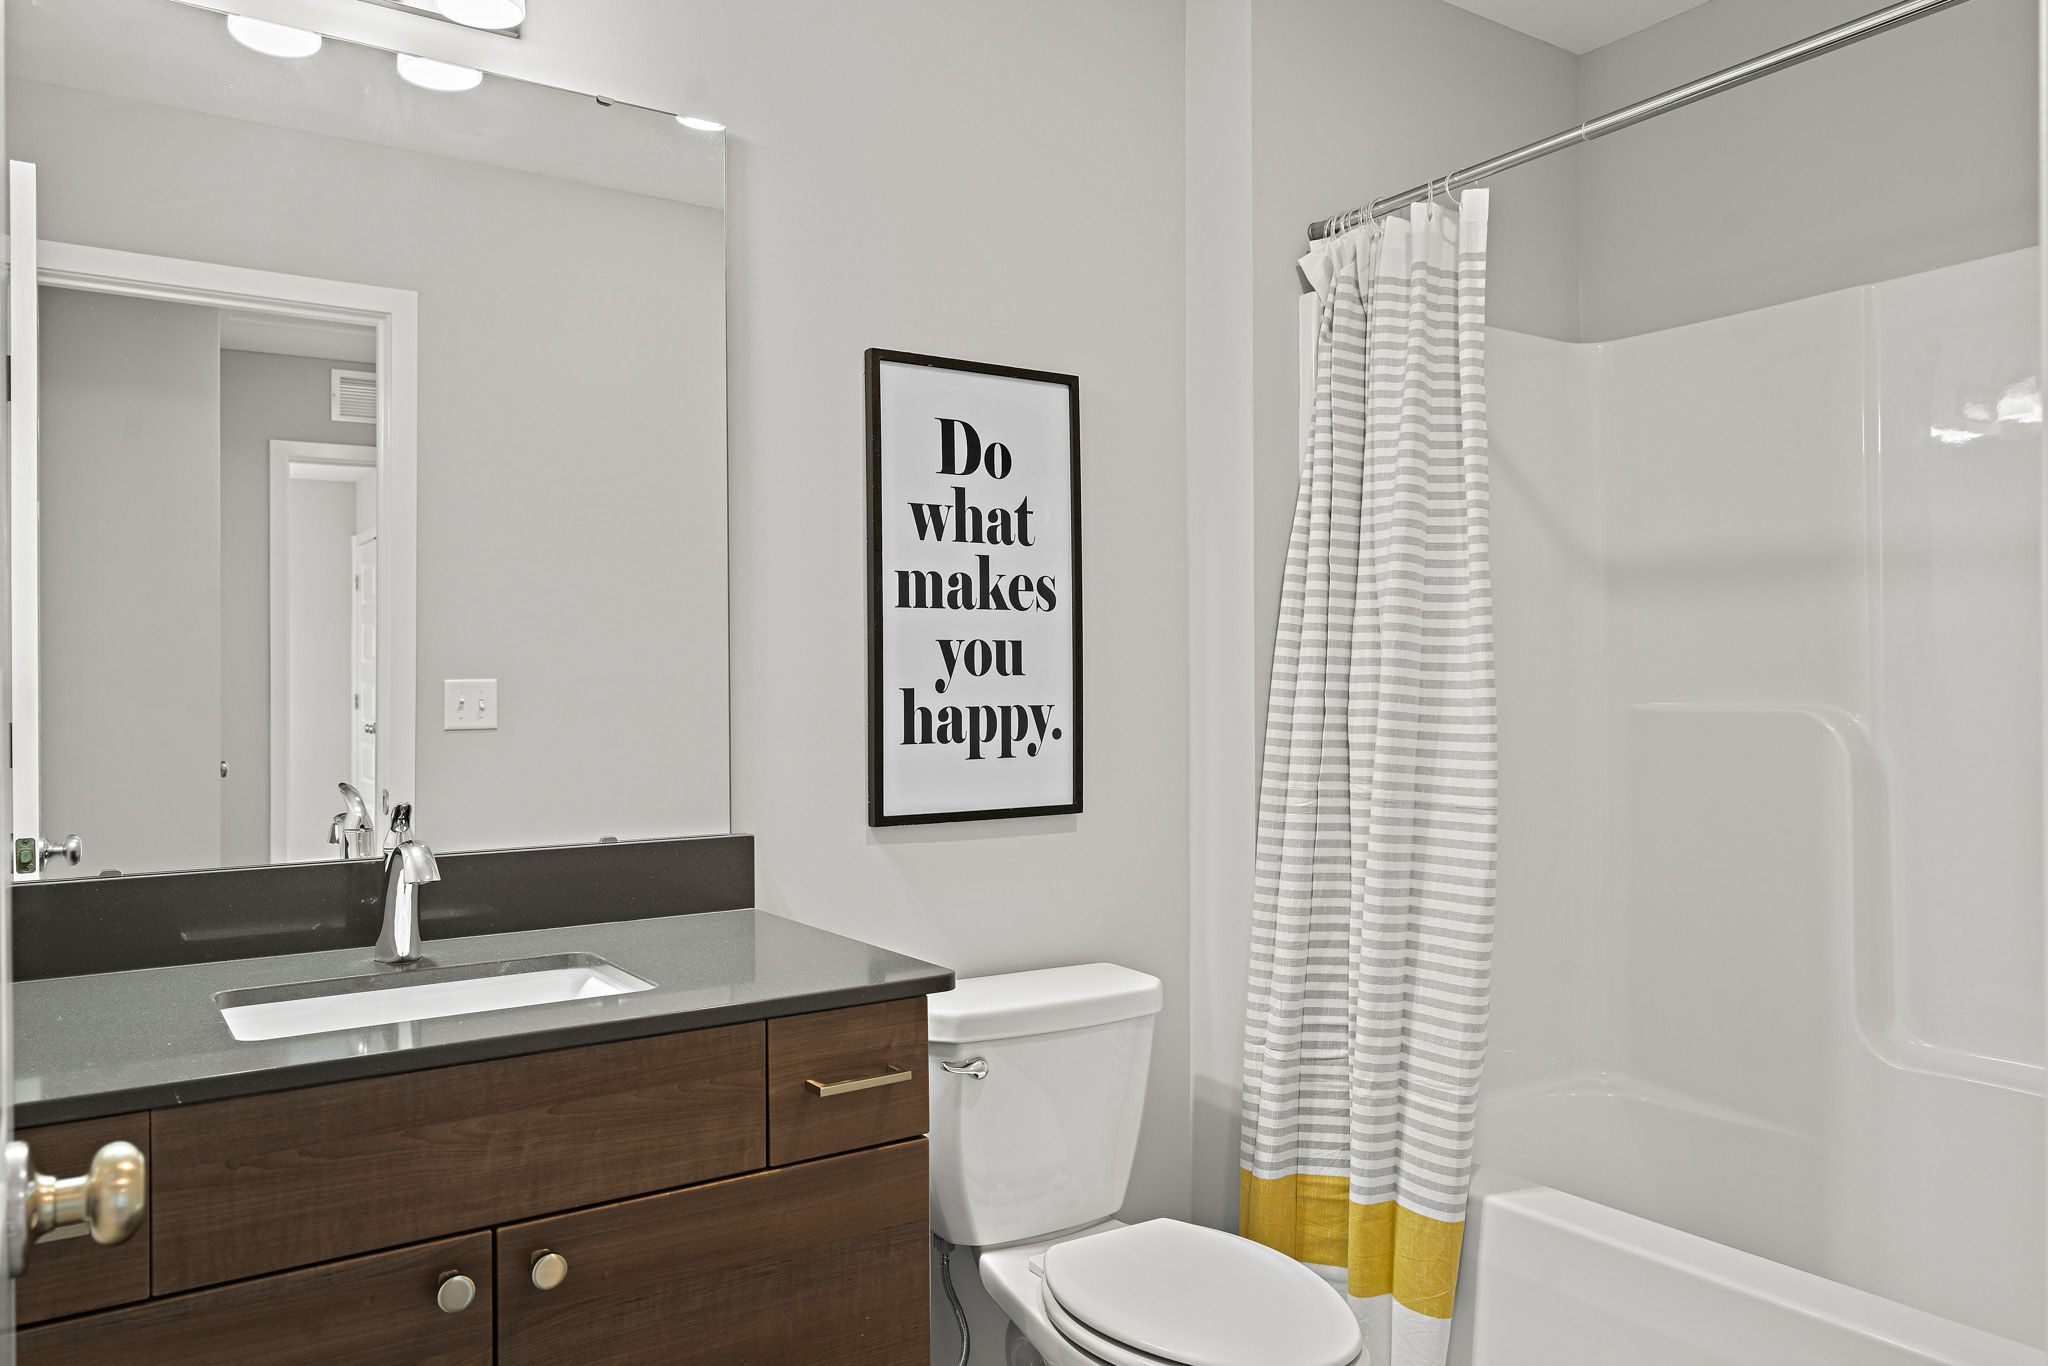 Bathroom featured in the sienna By clover & hive in Kansas City, MO